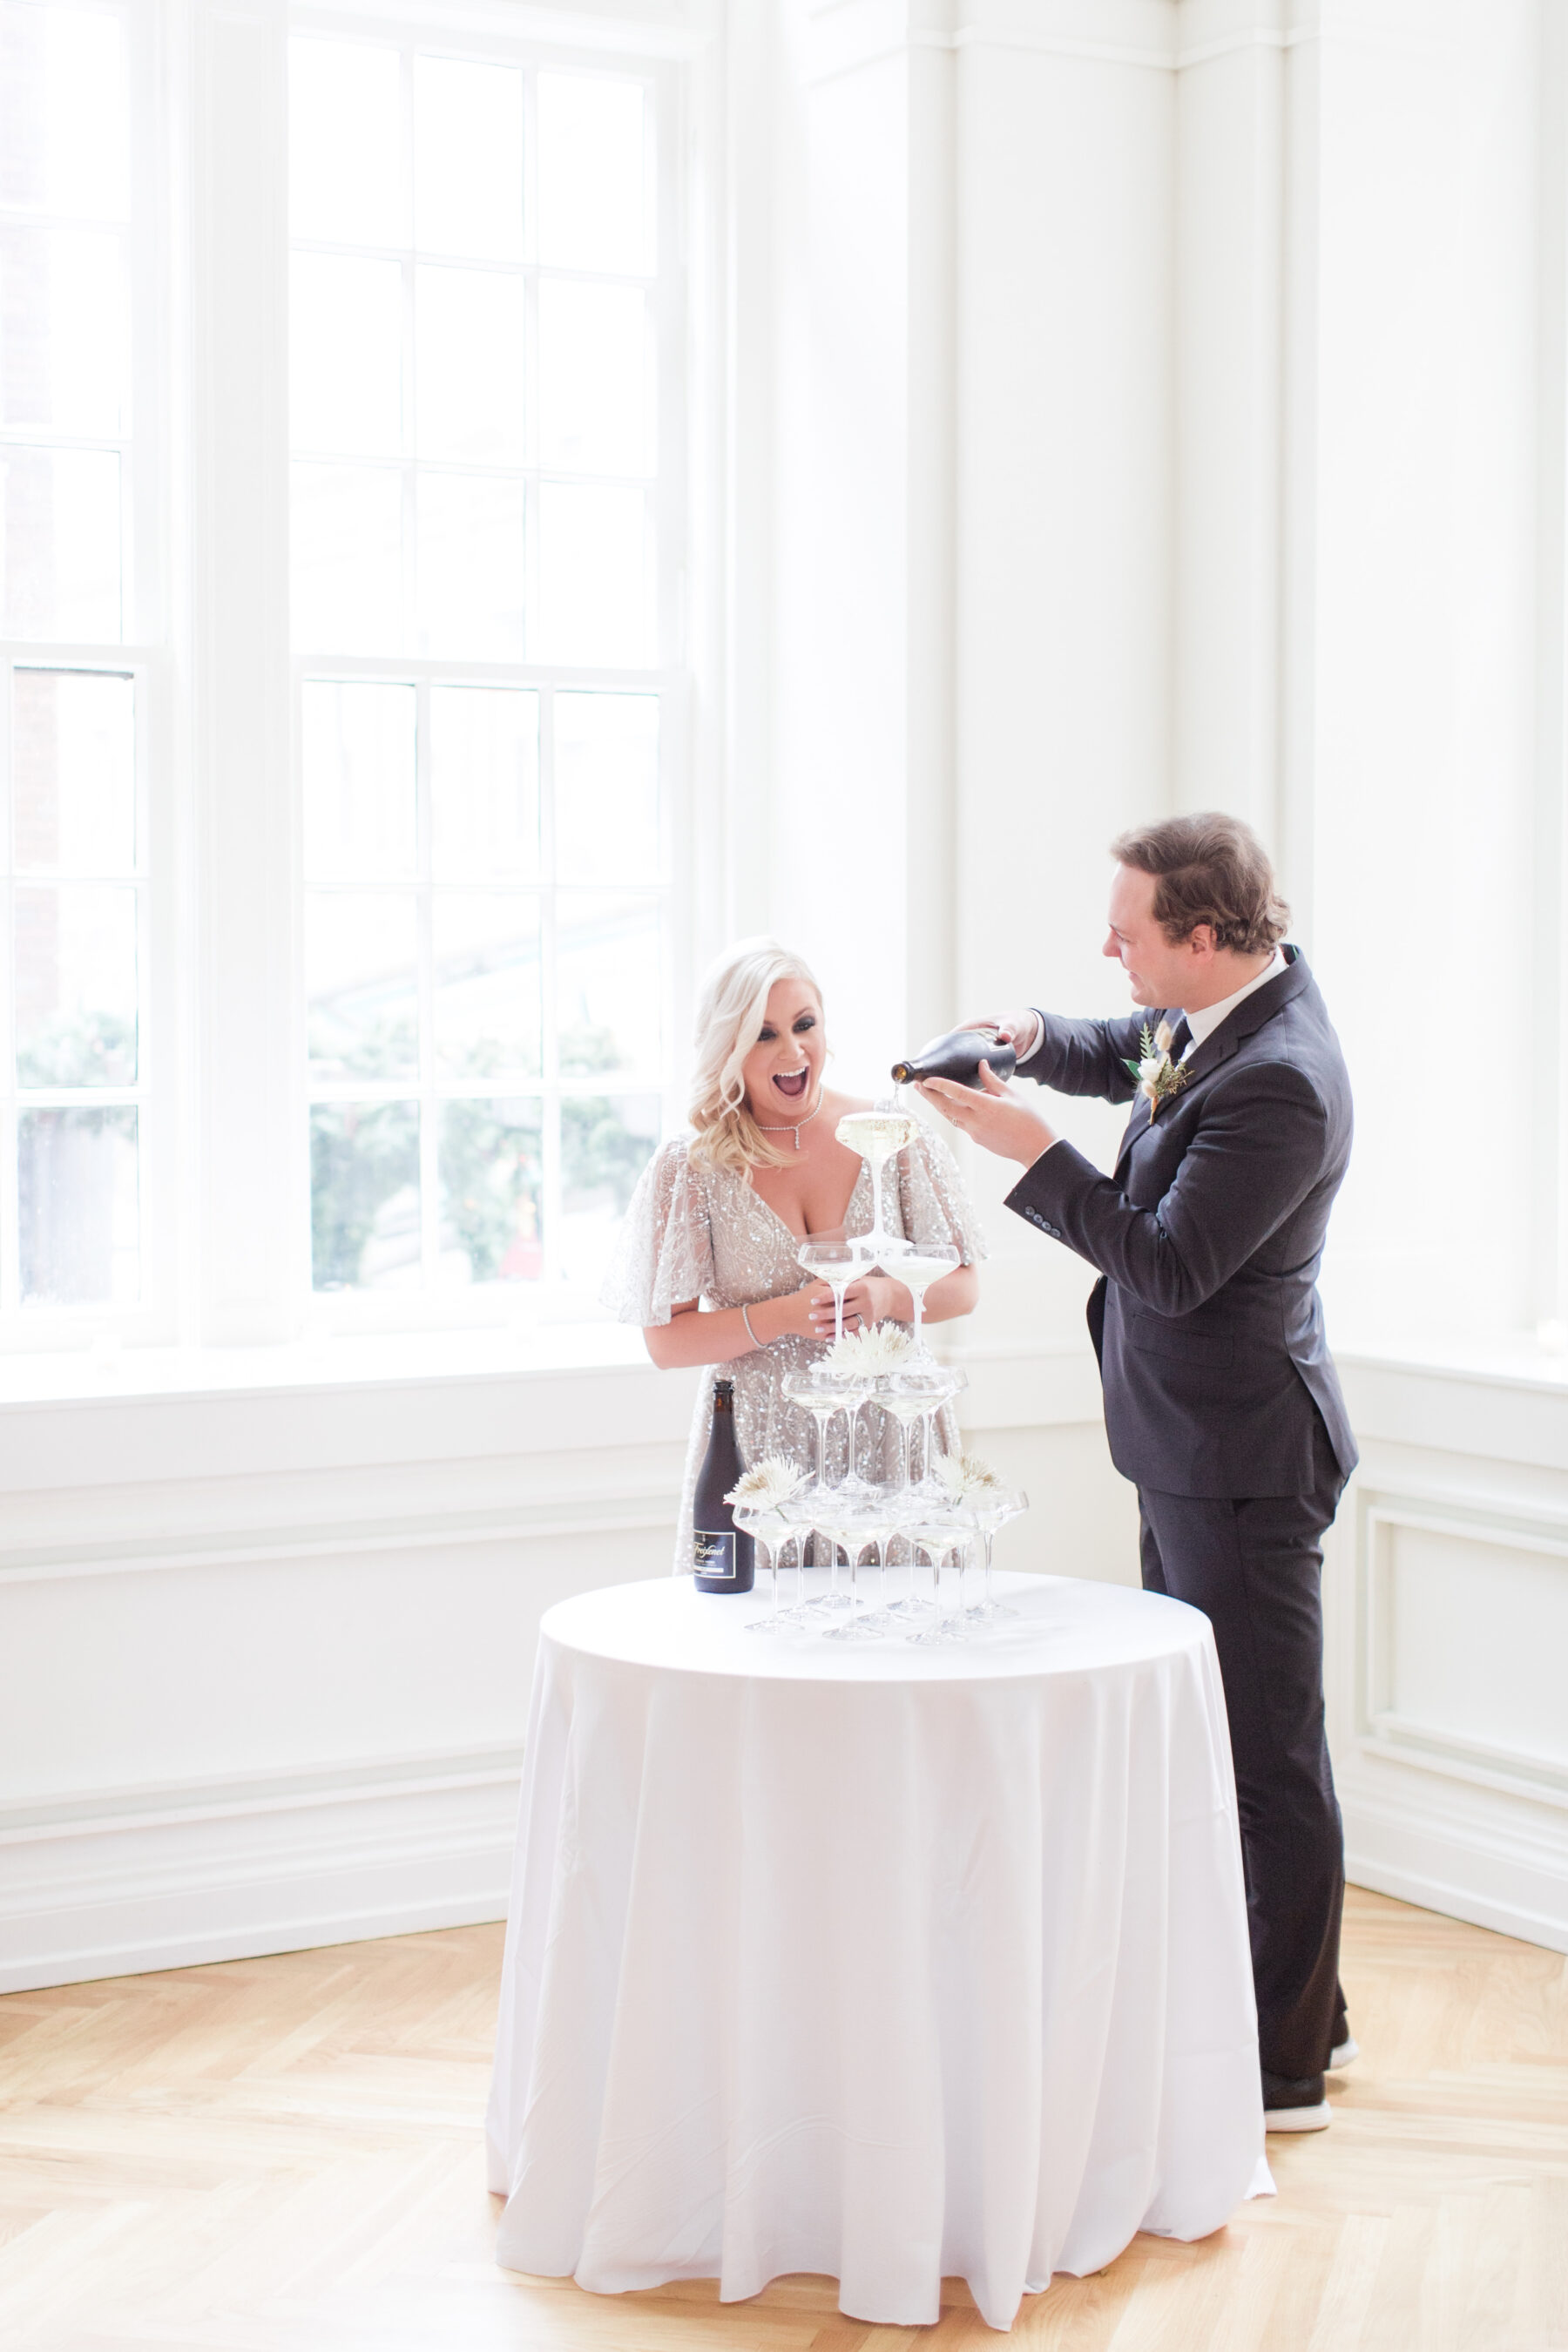 Wedding champagne fountain: Classic, Yet Modern New Years Eve Wedding Inspiration featured on Nashville Bride Guide